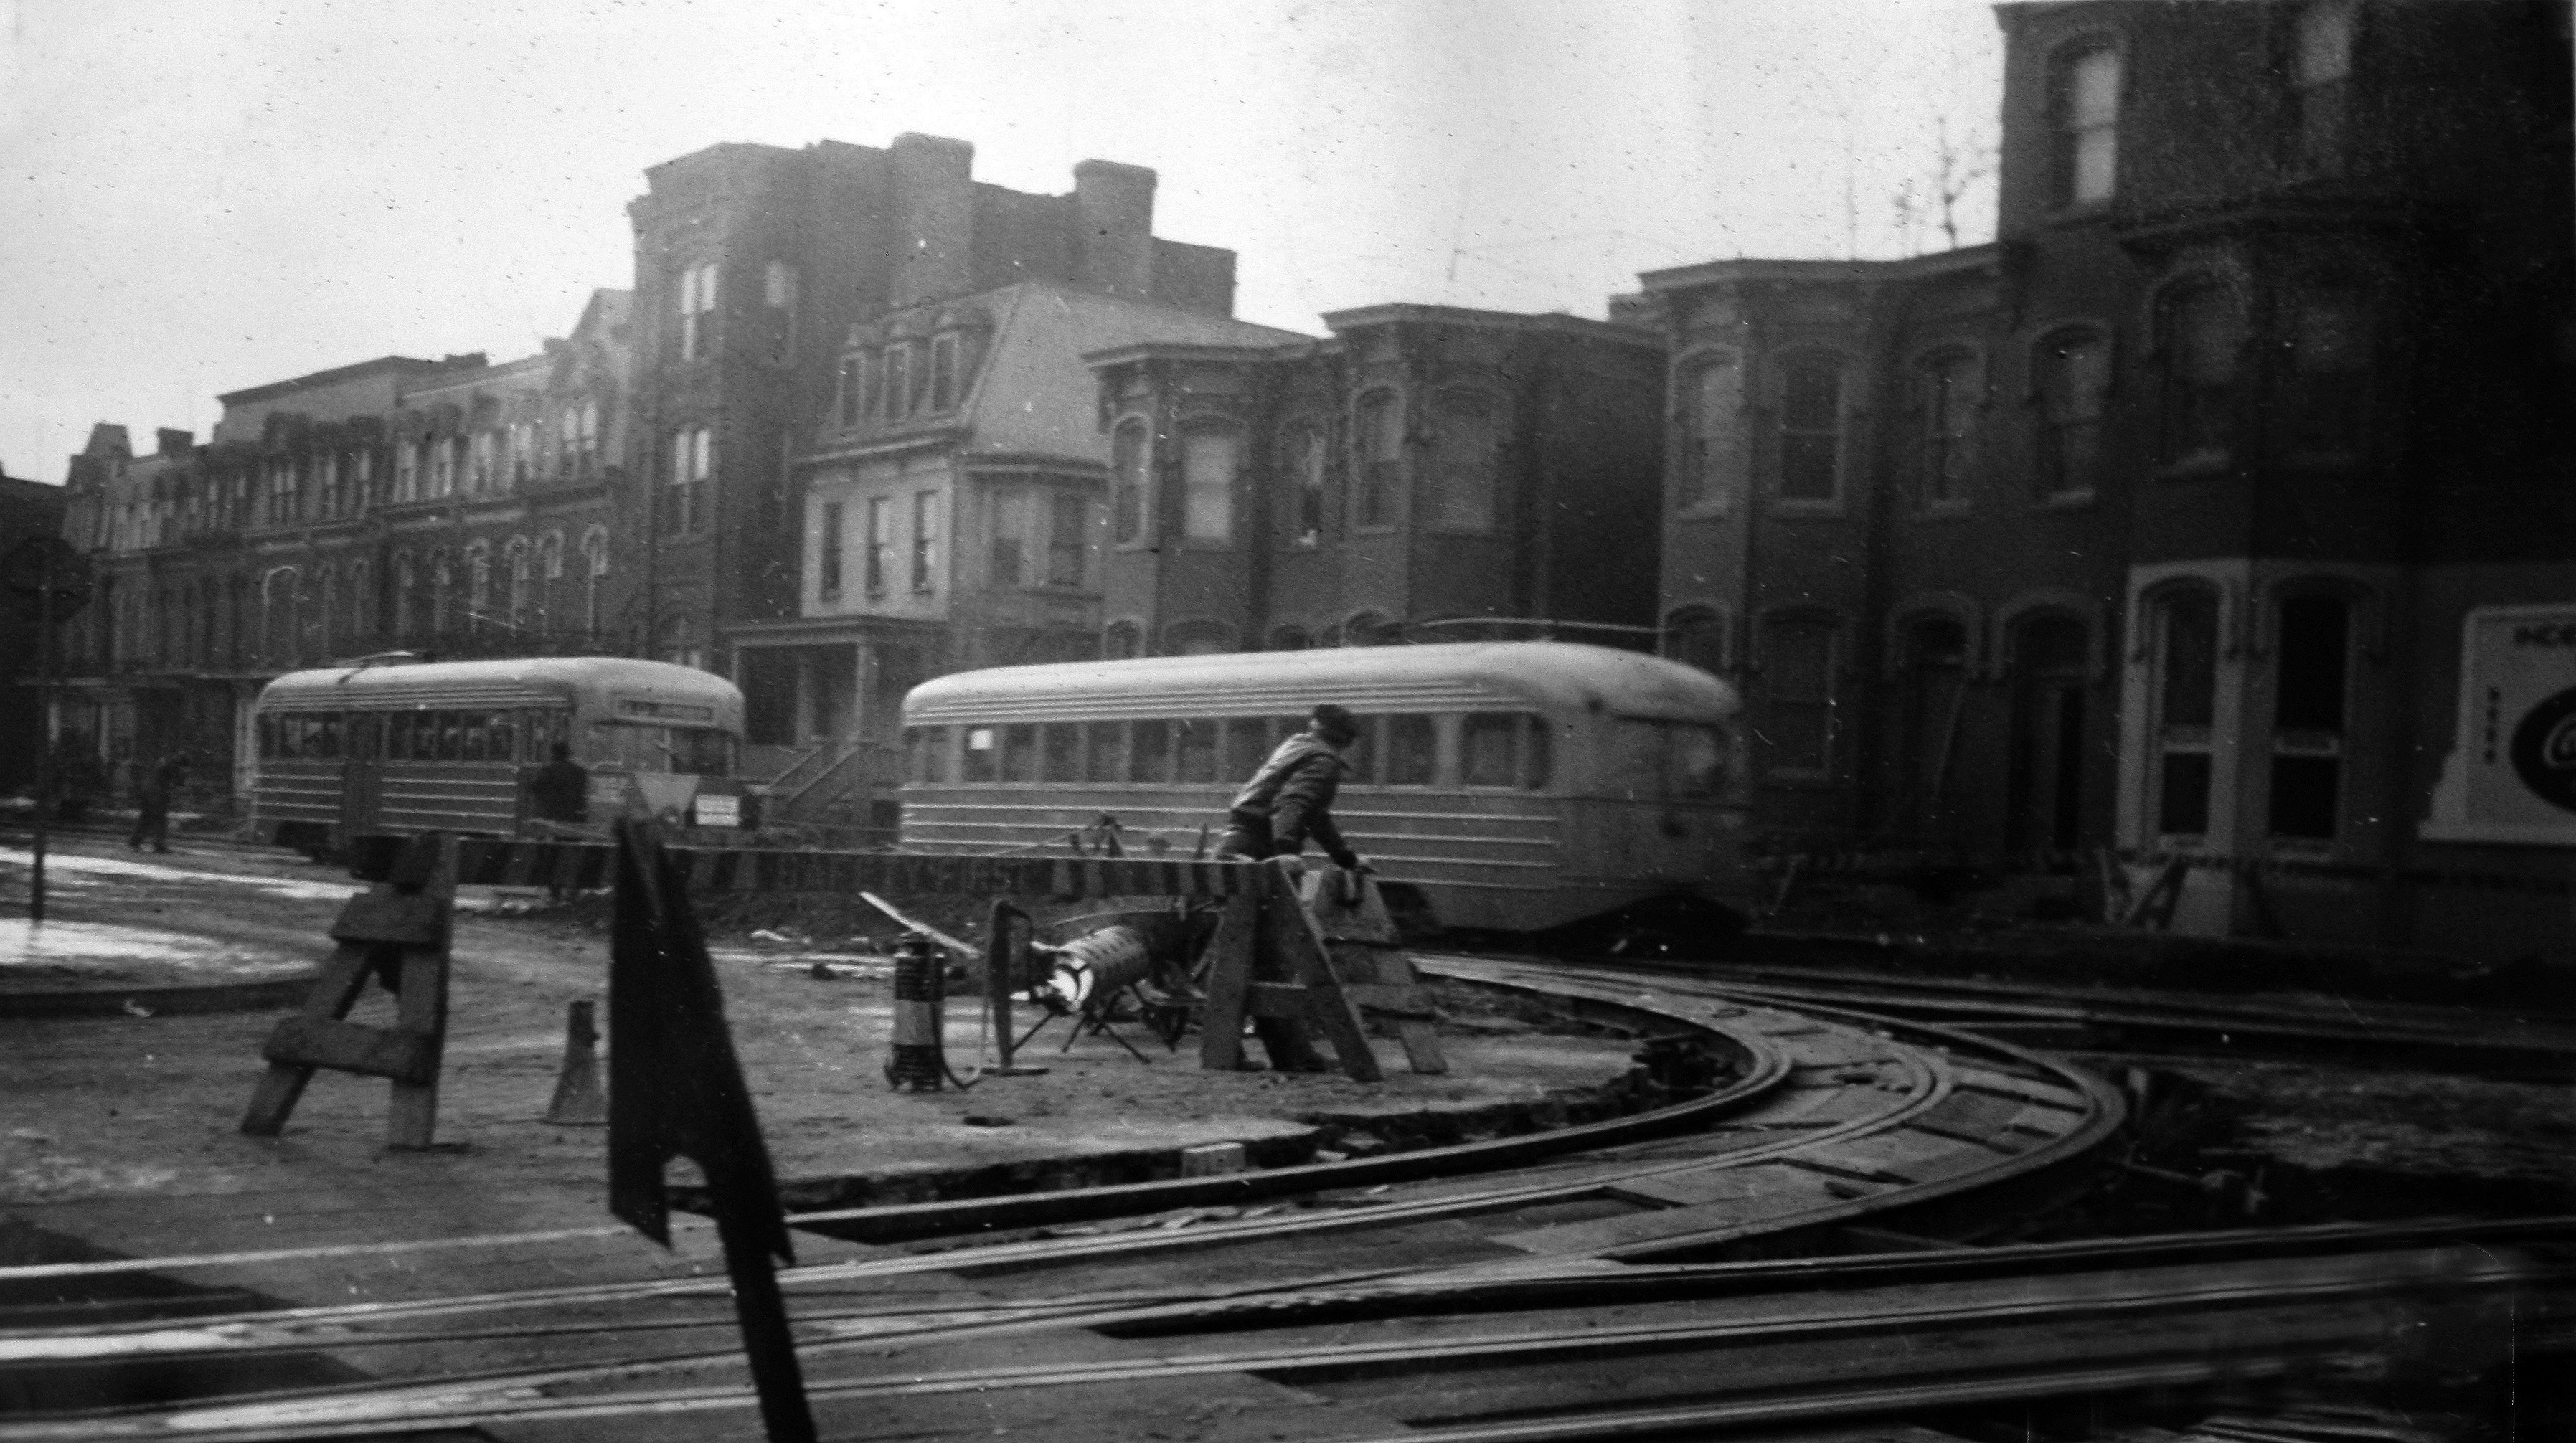 600 block of Independence Avenue, c. 1941. This site would later become the home of FOB 10B. Residential row houses seen here are typical of the area in this era.